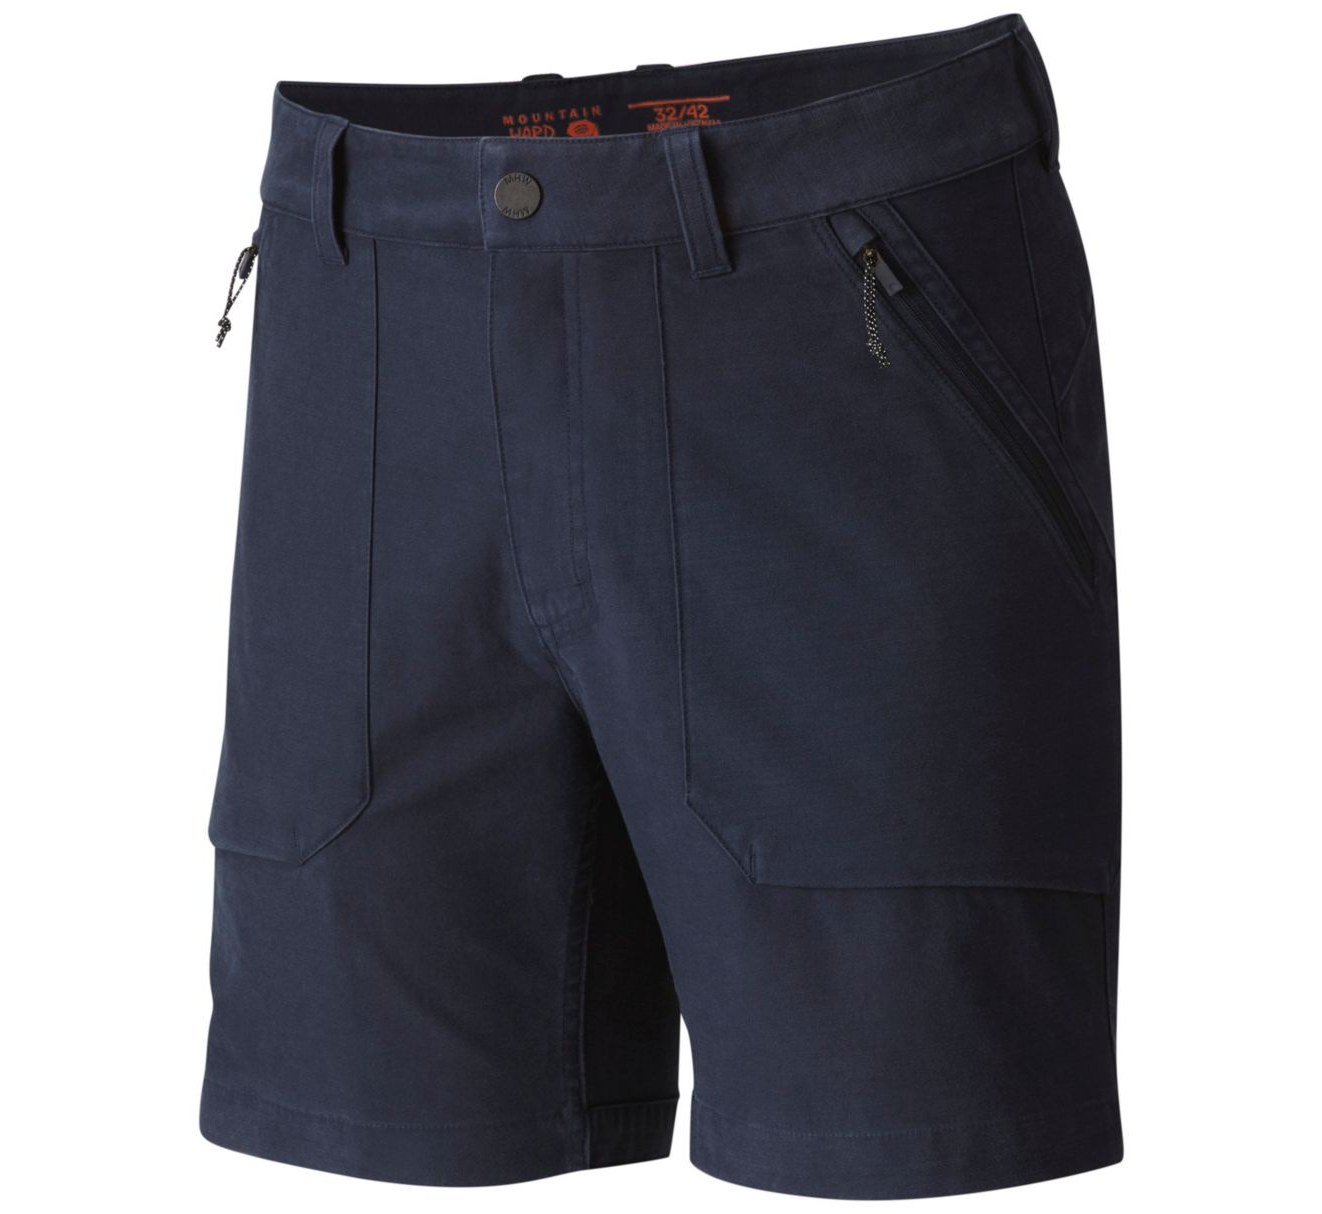 Mountian Hardwear Men's Redwood Camp™ Short